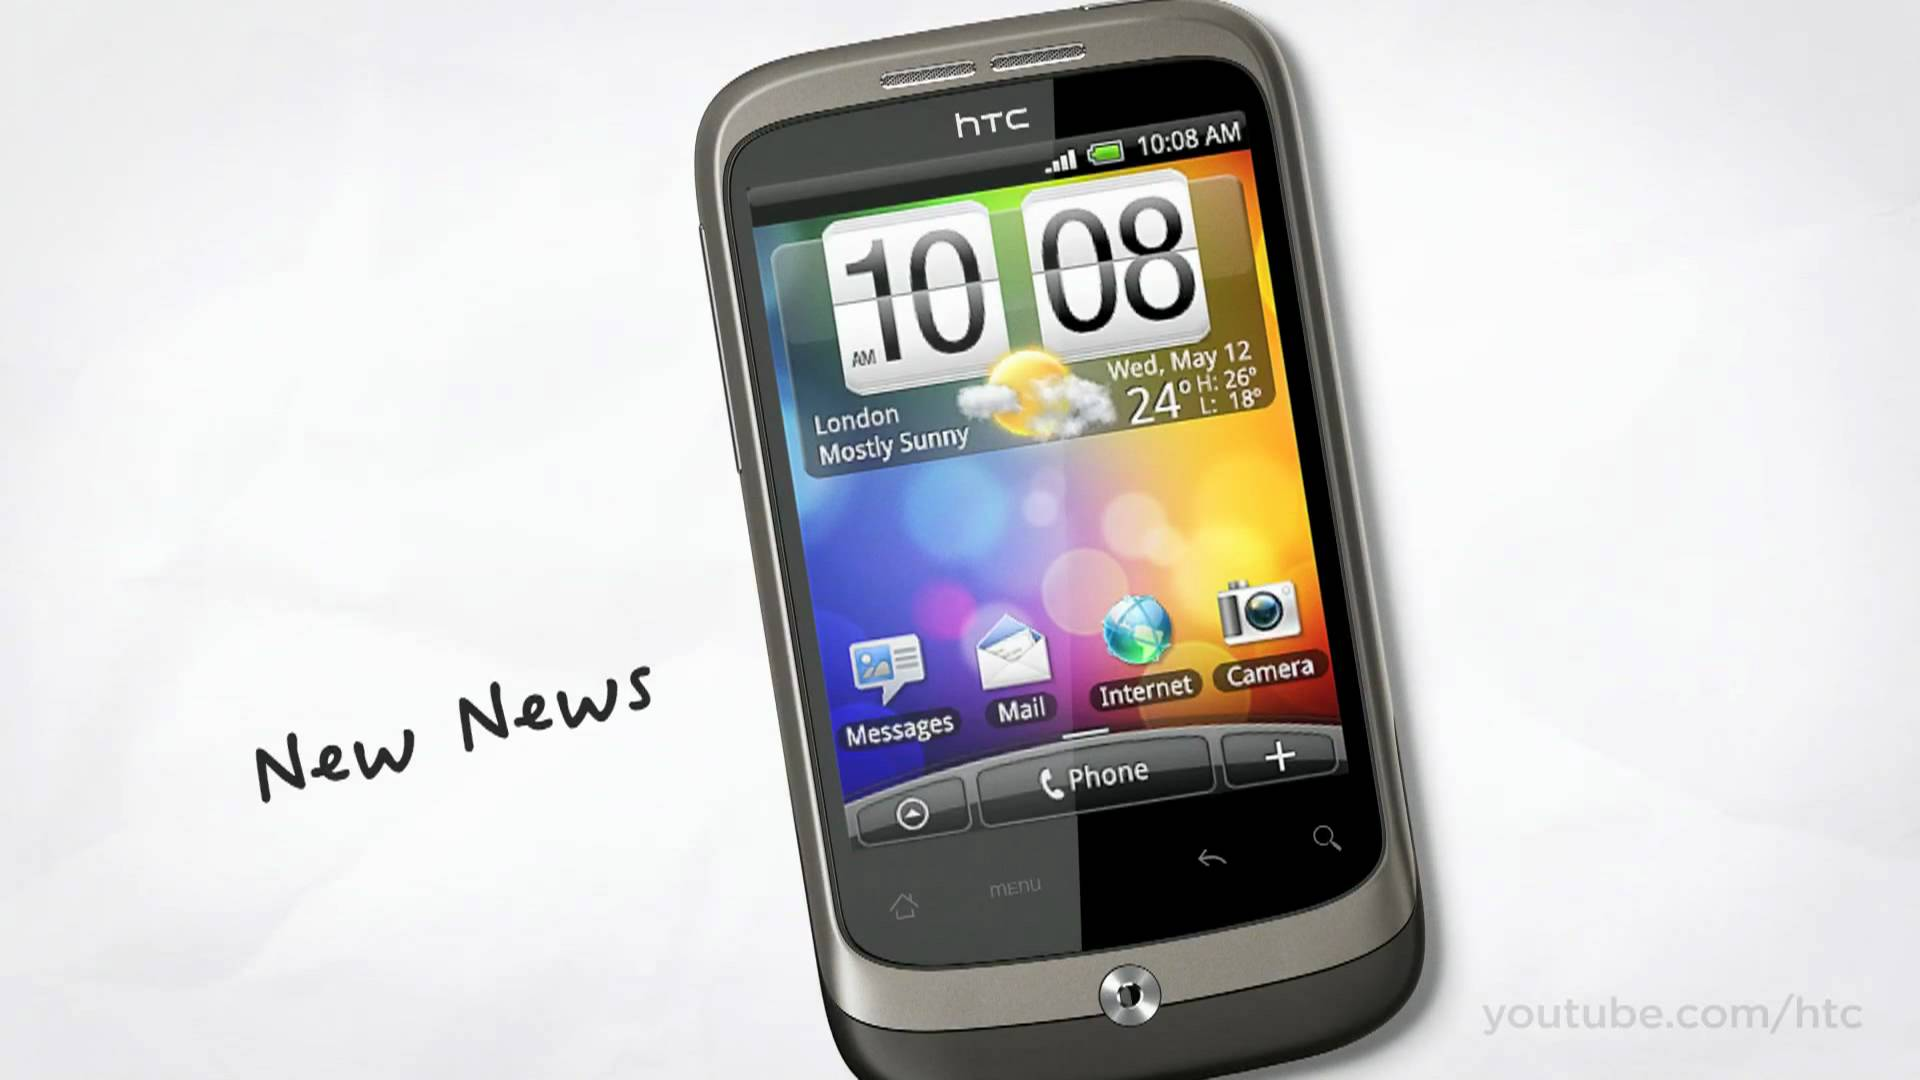 HTC Wildfire Review: compacte budgetsmartphone